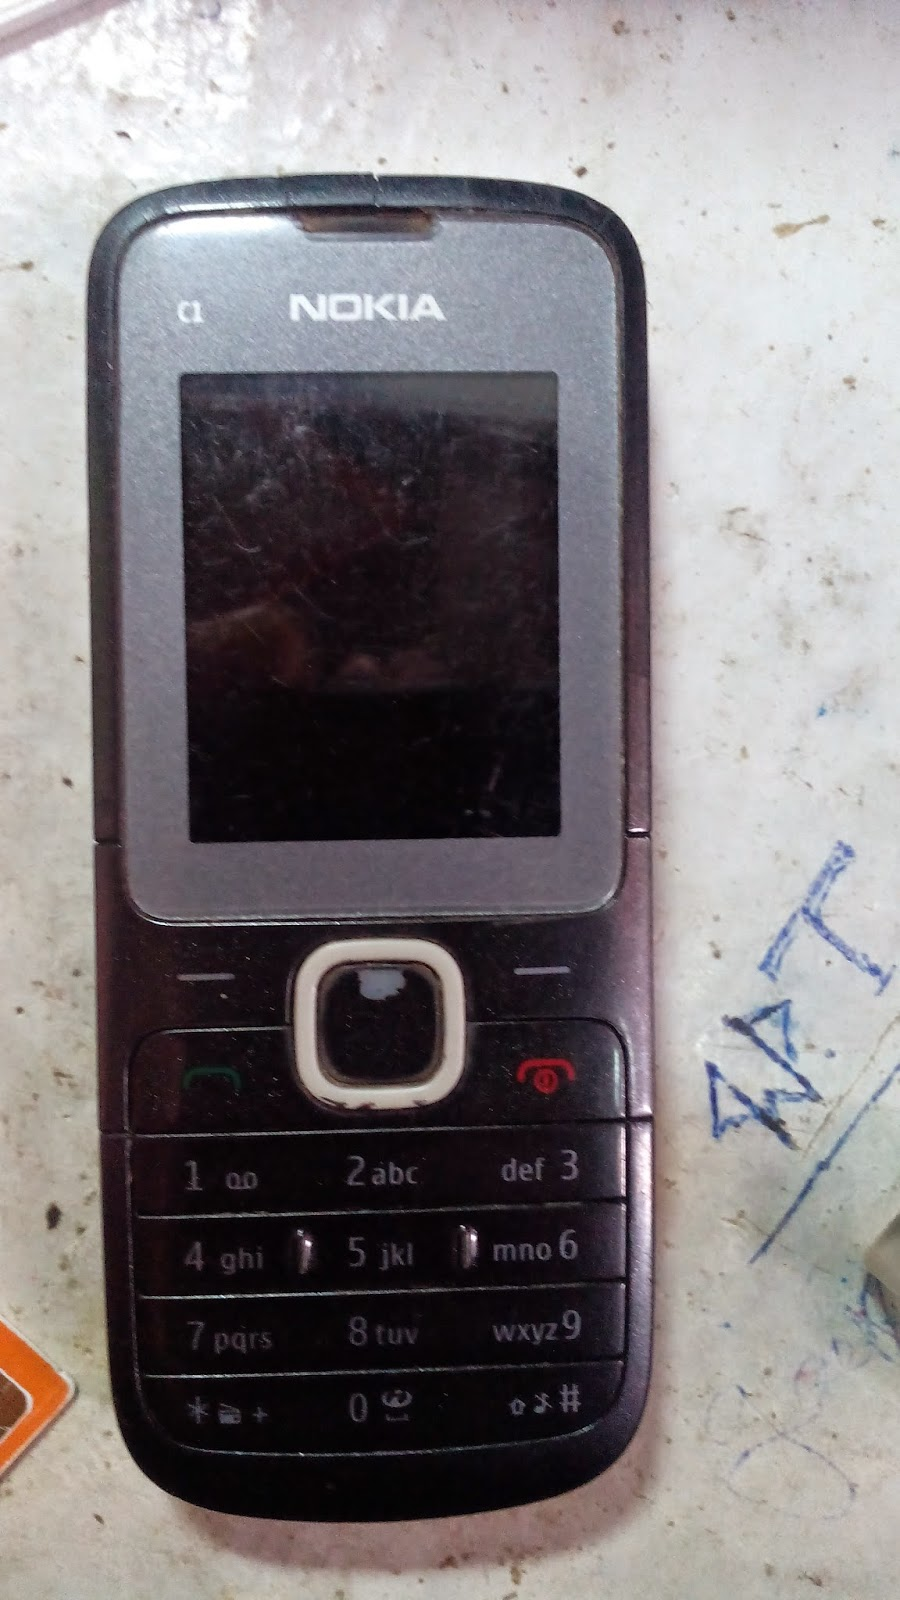 Nokia C1 01 Rm 607 V6 07 Flash File Mobile Flickr